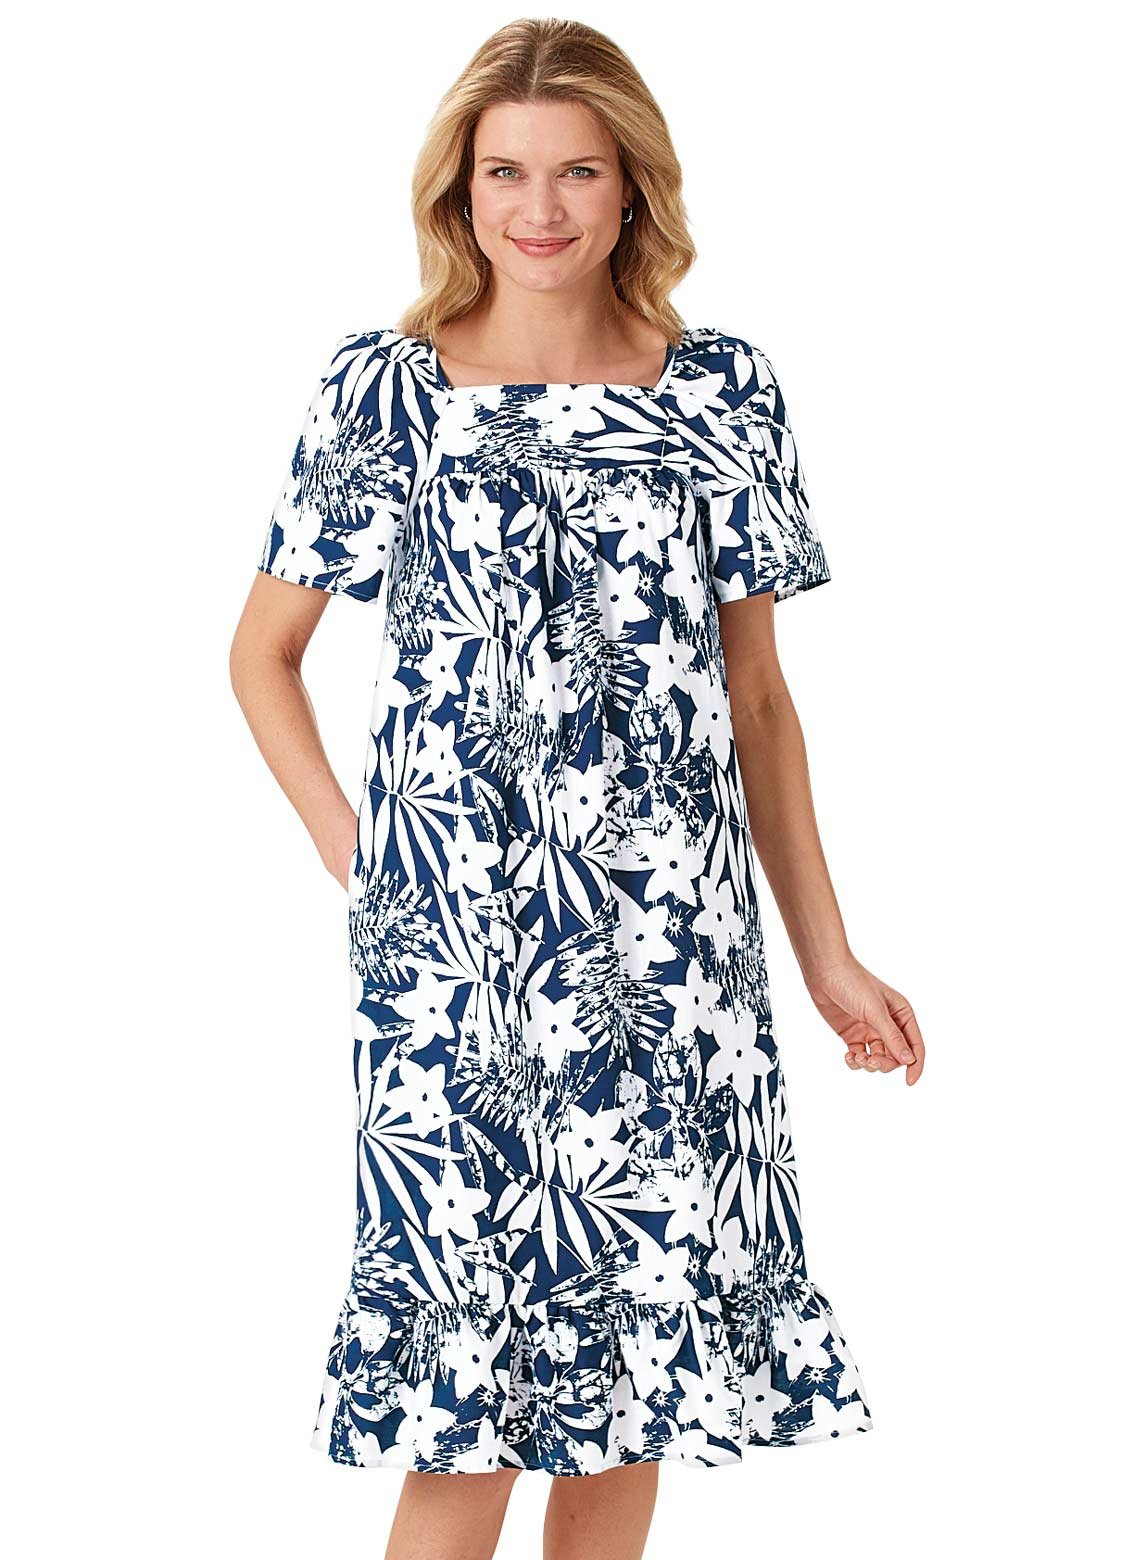 Carol Wright Gifts Tropical Monotone Dress, Navy, Size Extra Large (2X)